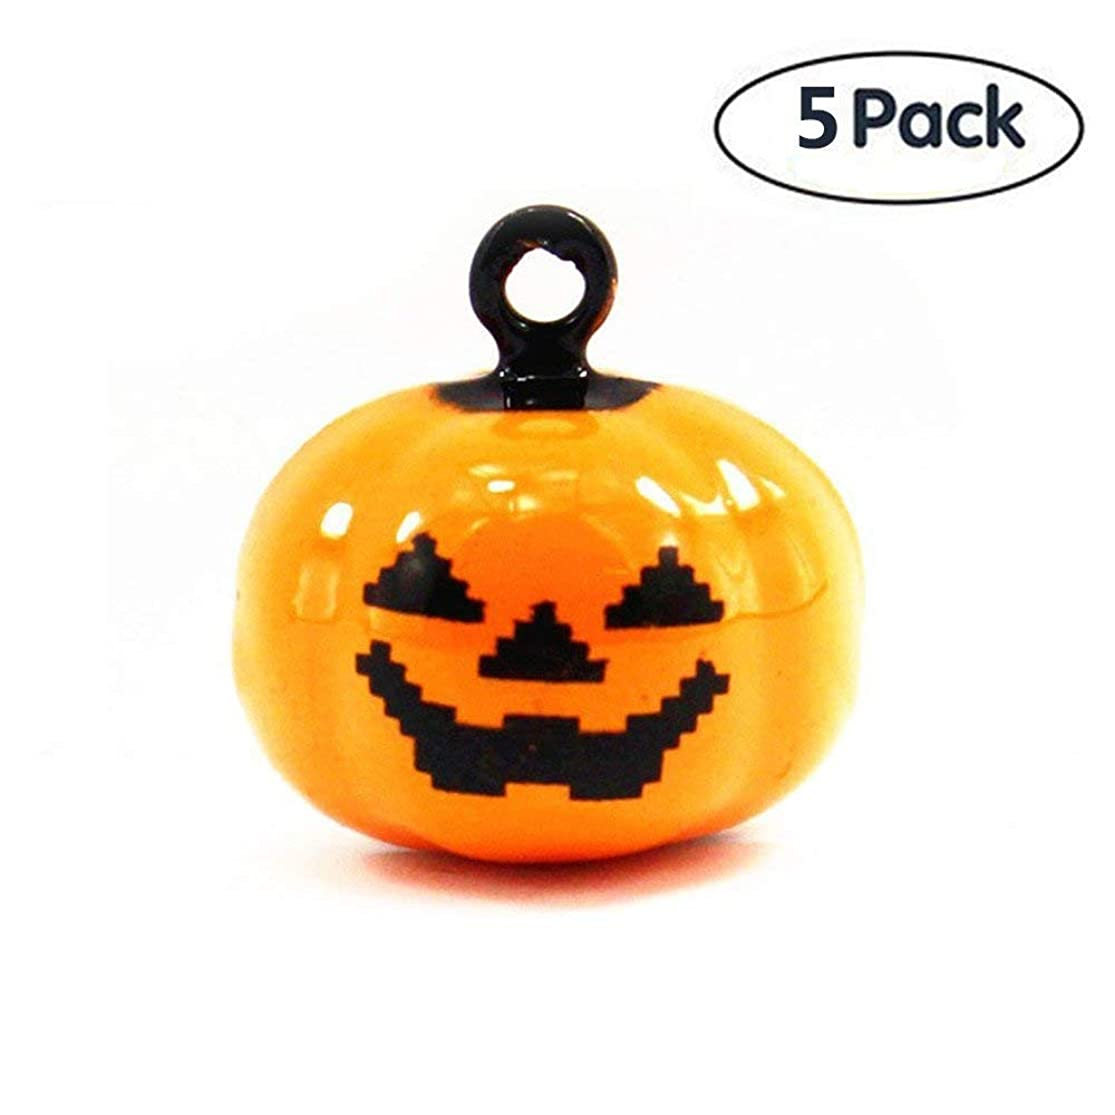 S-Lifeeling 5 Pack of Pet Bell Sets Halloween Pumpkin Bell 14 X 18 mm Jewelry Findings Pumpkin Jewelry Making Charms for Cat Dog Collar Or Interior Decoration shmnoluj5